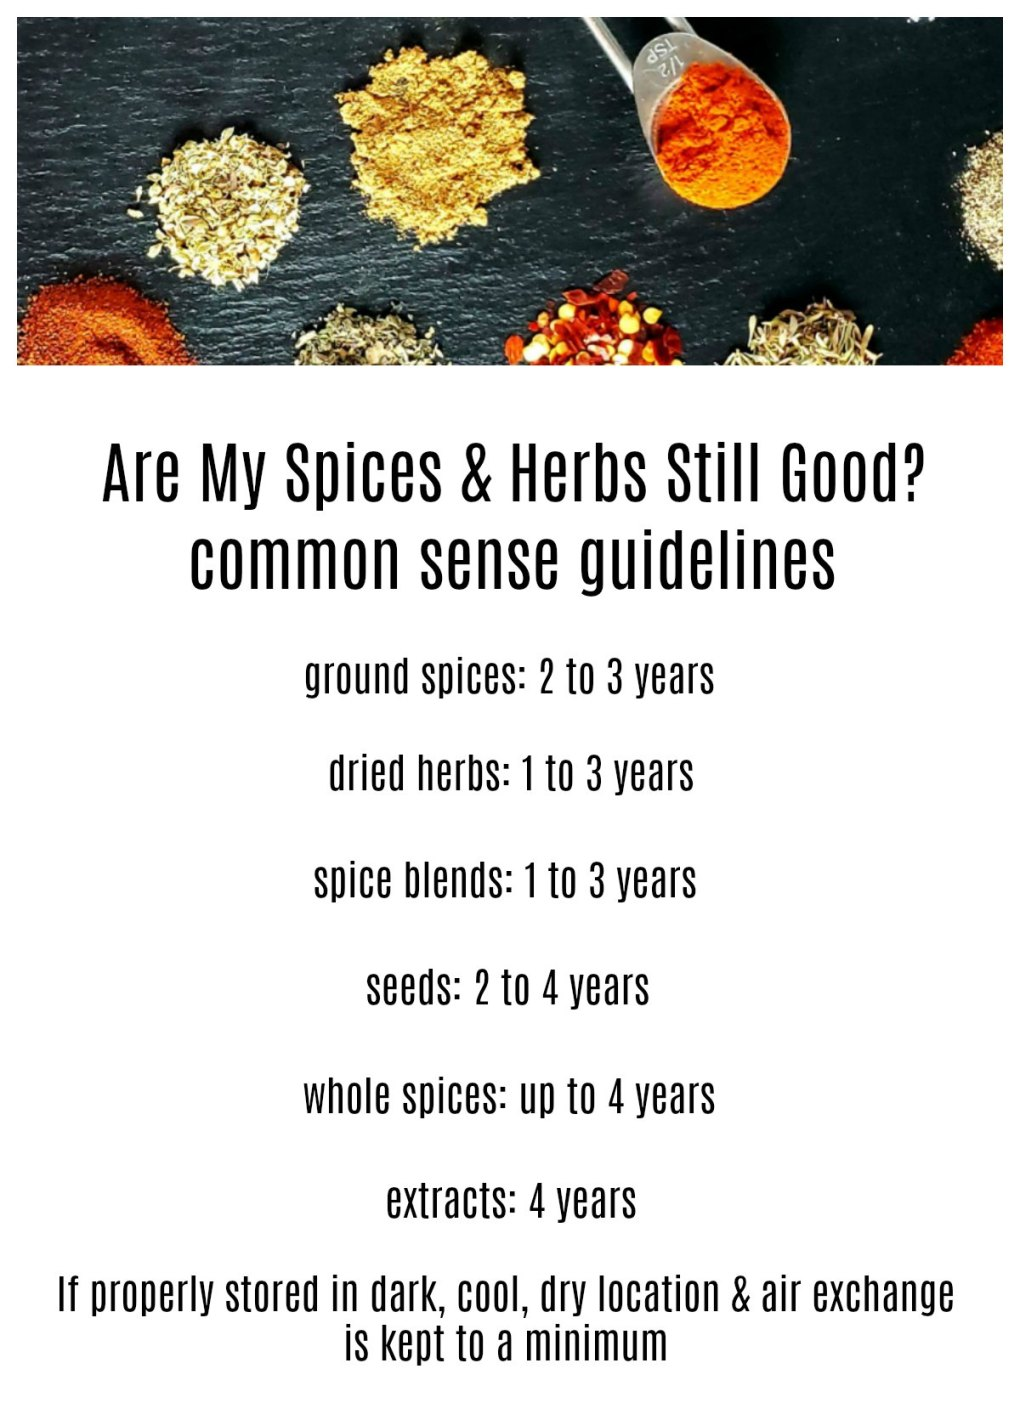 Are My Dried Spices & Herbs Still Good